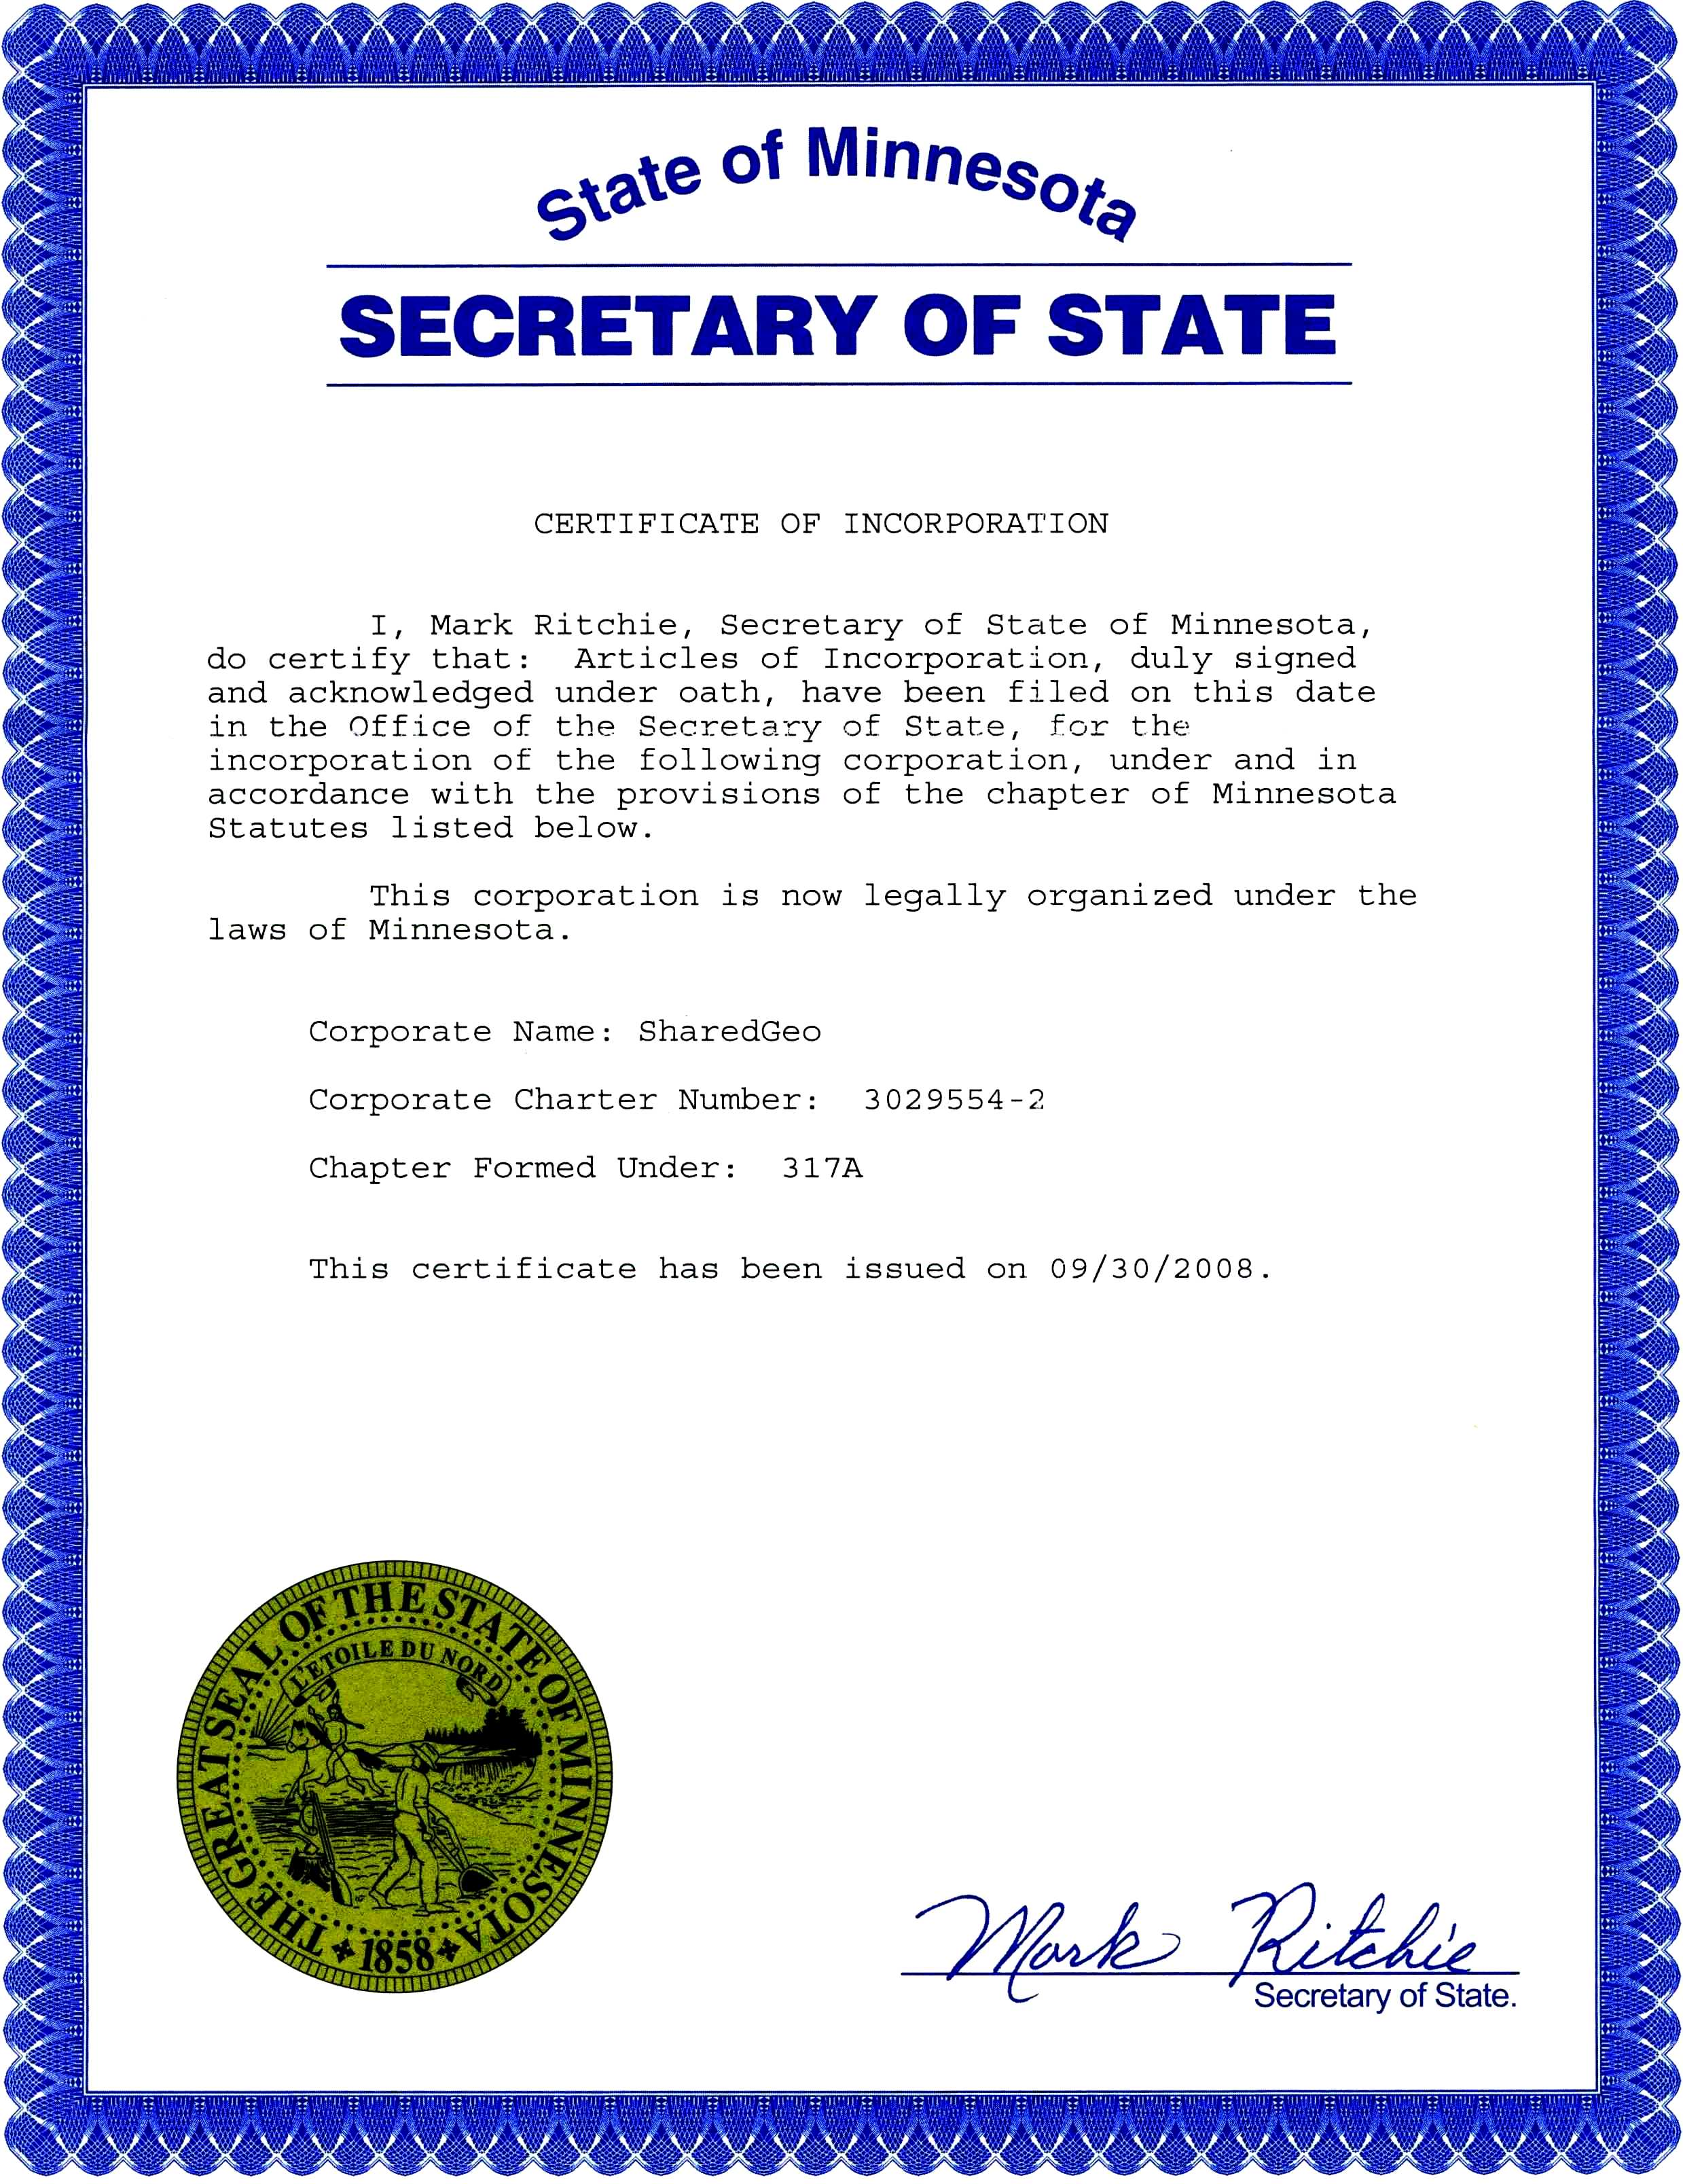 Governance sharedgeo articles of incorporation state of minnesota certificate of incorporation xflitez Images